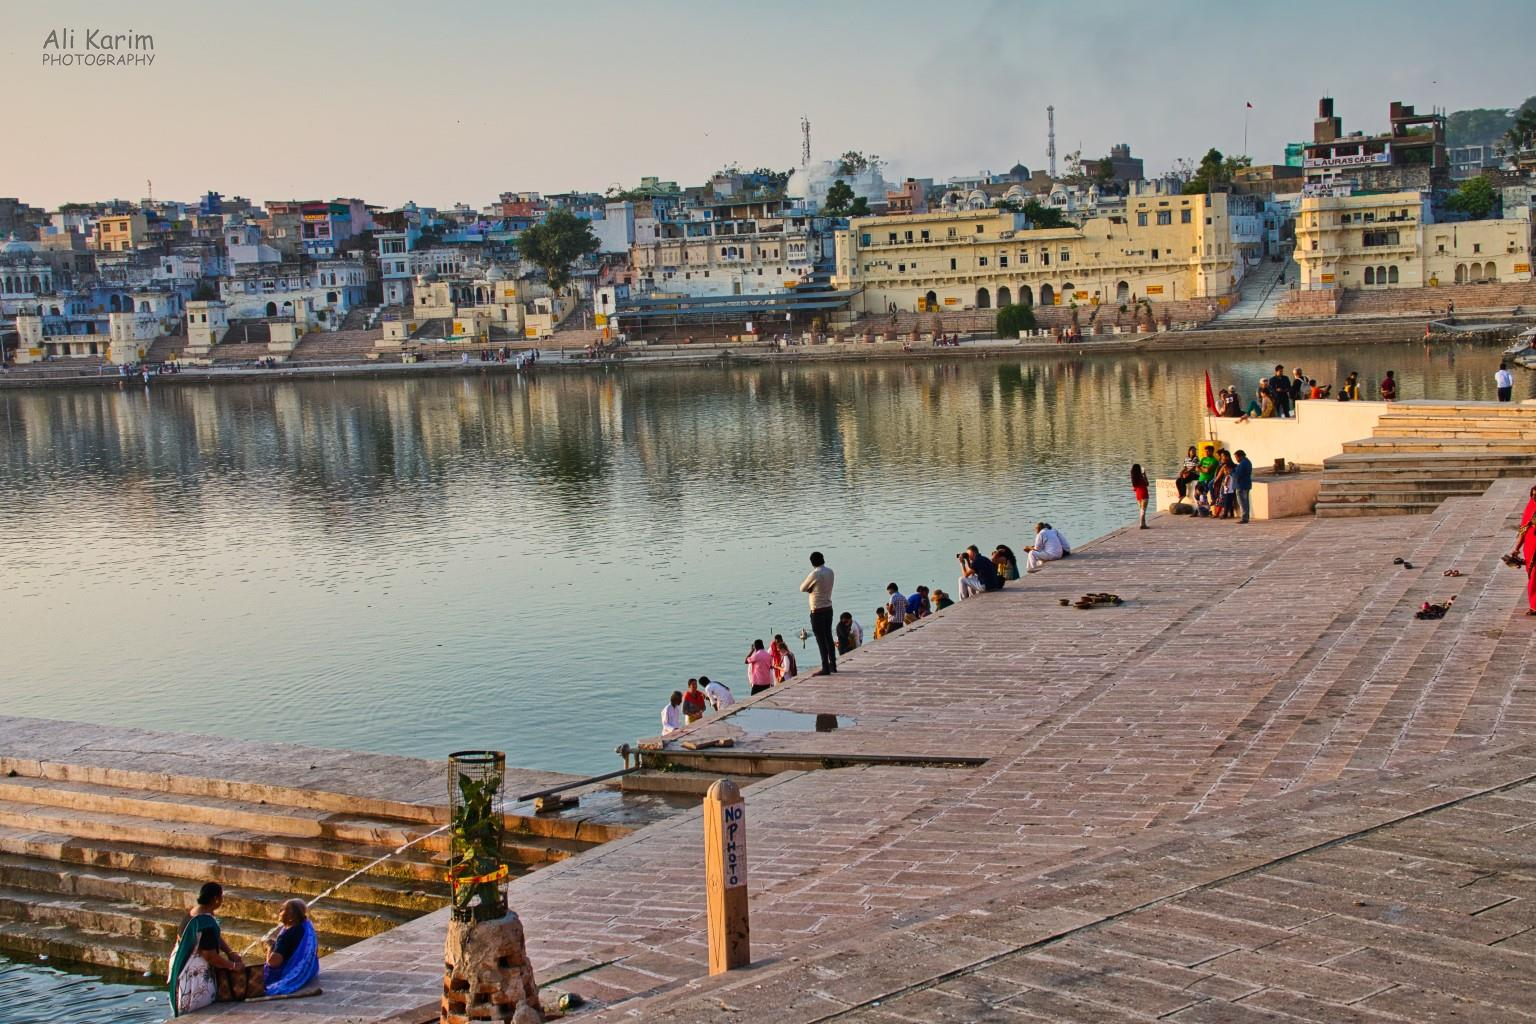 Pushkar, Rajasthan Pushkar Lake and Ghats